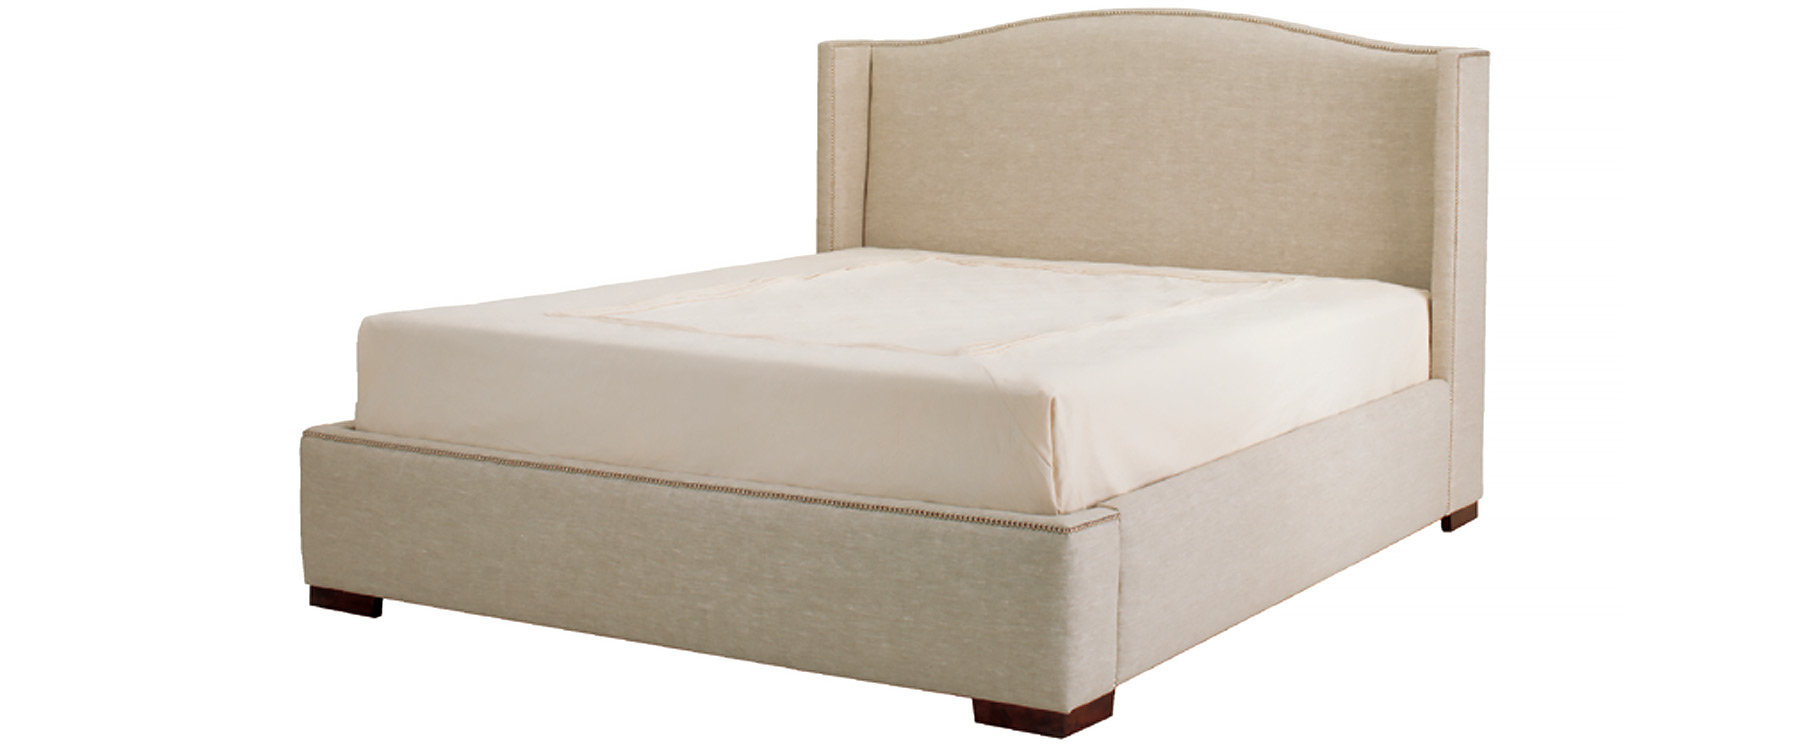 The Marissa Bed | Portland Furniture Within Marissa Sofa Chairs (Image 24 of 25)